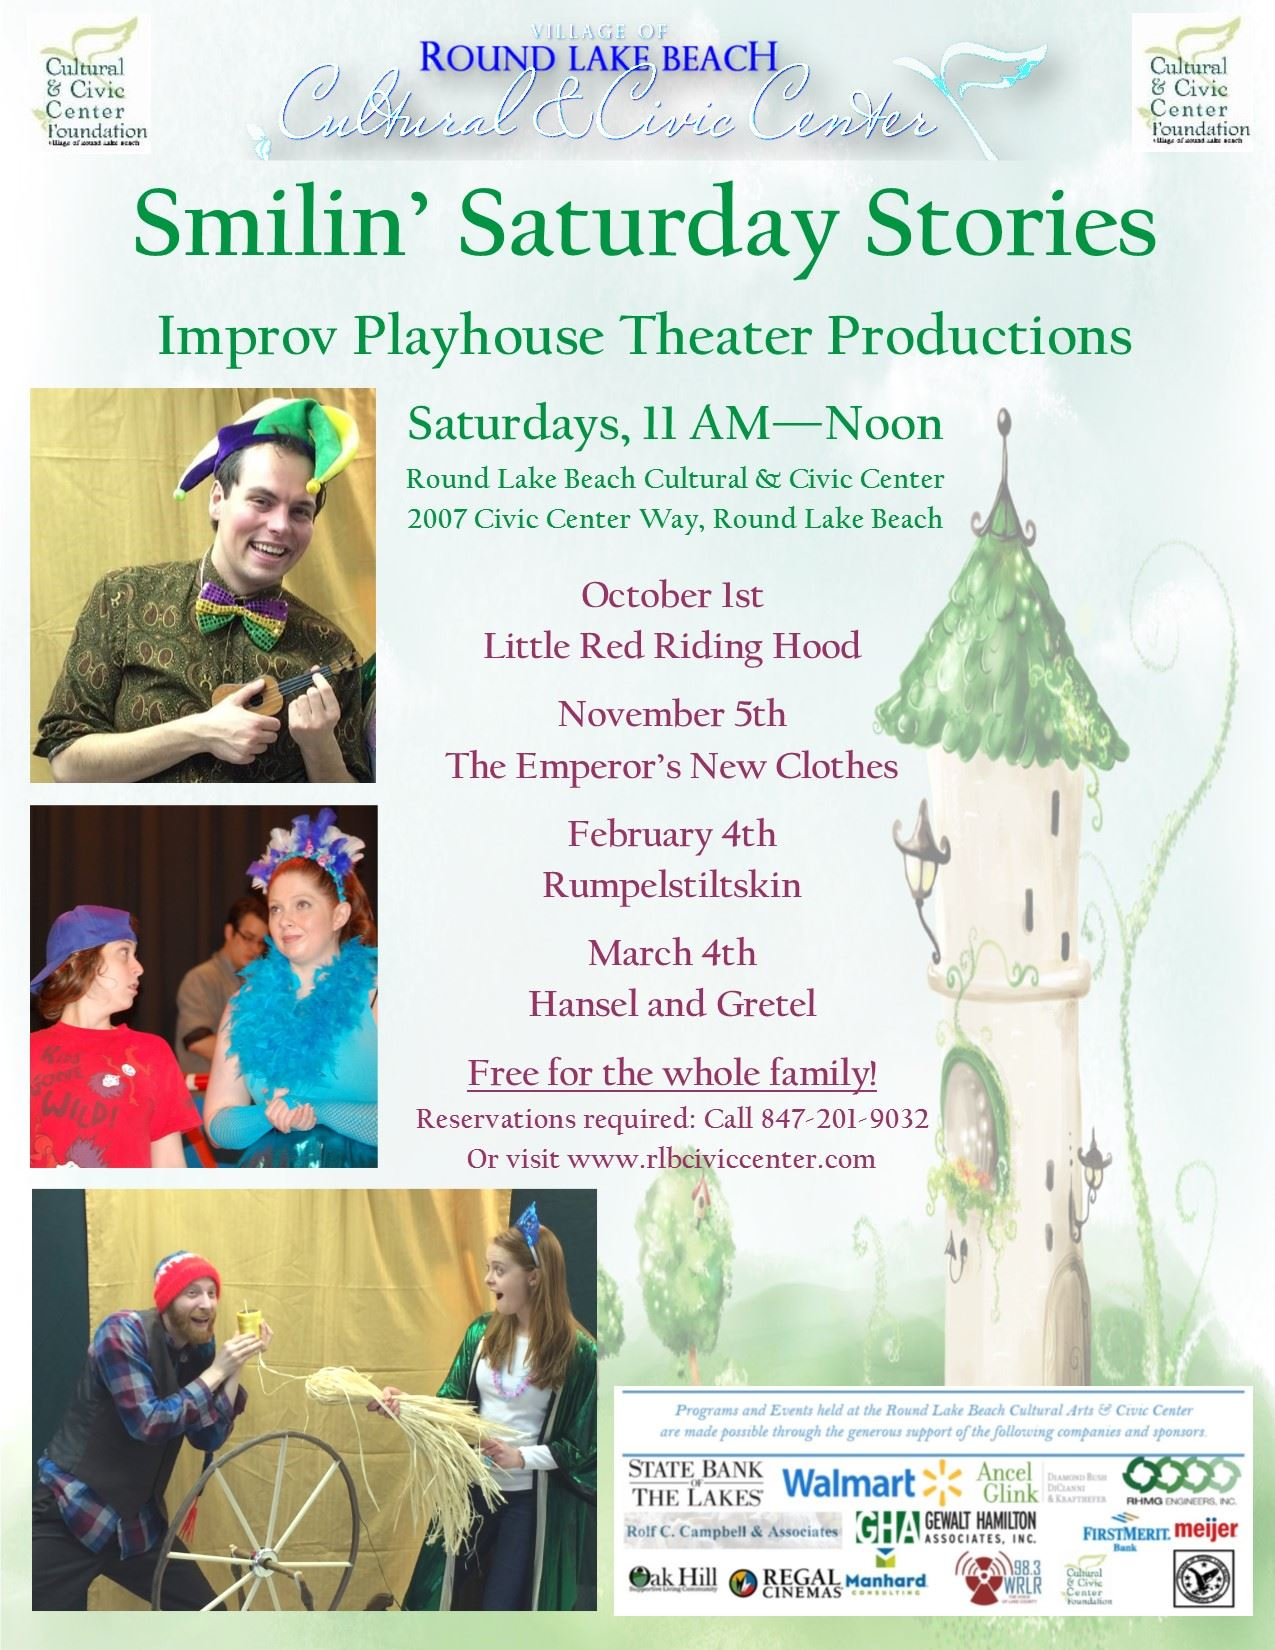 Smilin Saturday Stories flyer